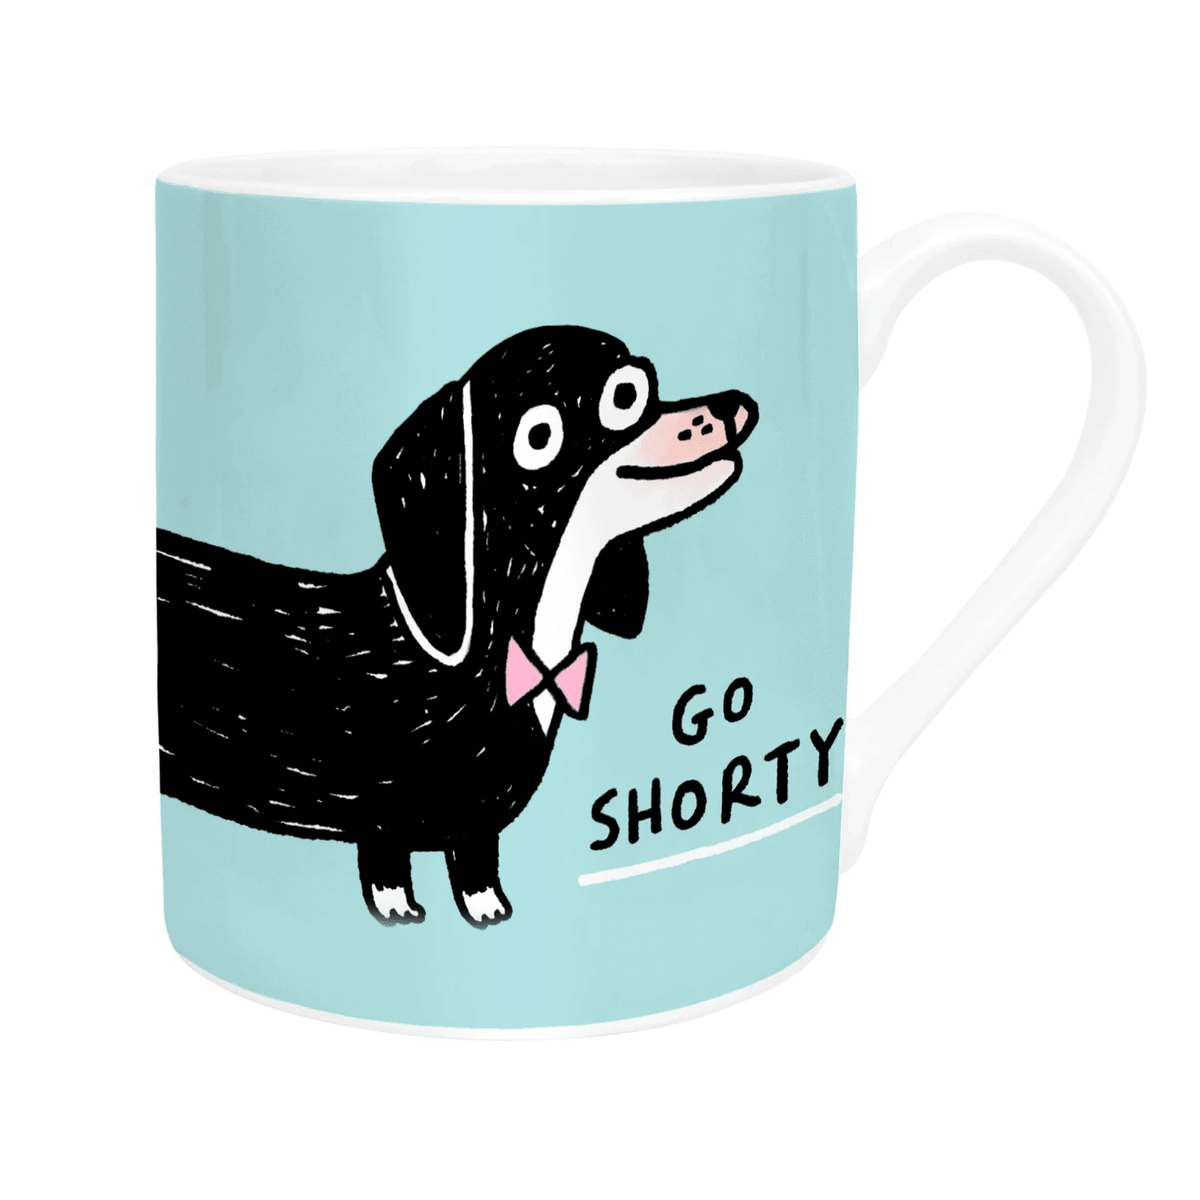 Ohh Deer Mugs Go Shorty Mug - Set of 6